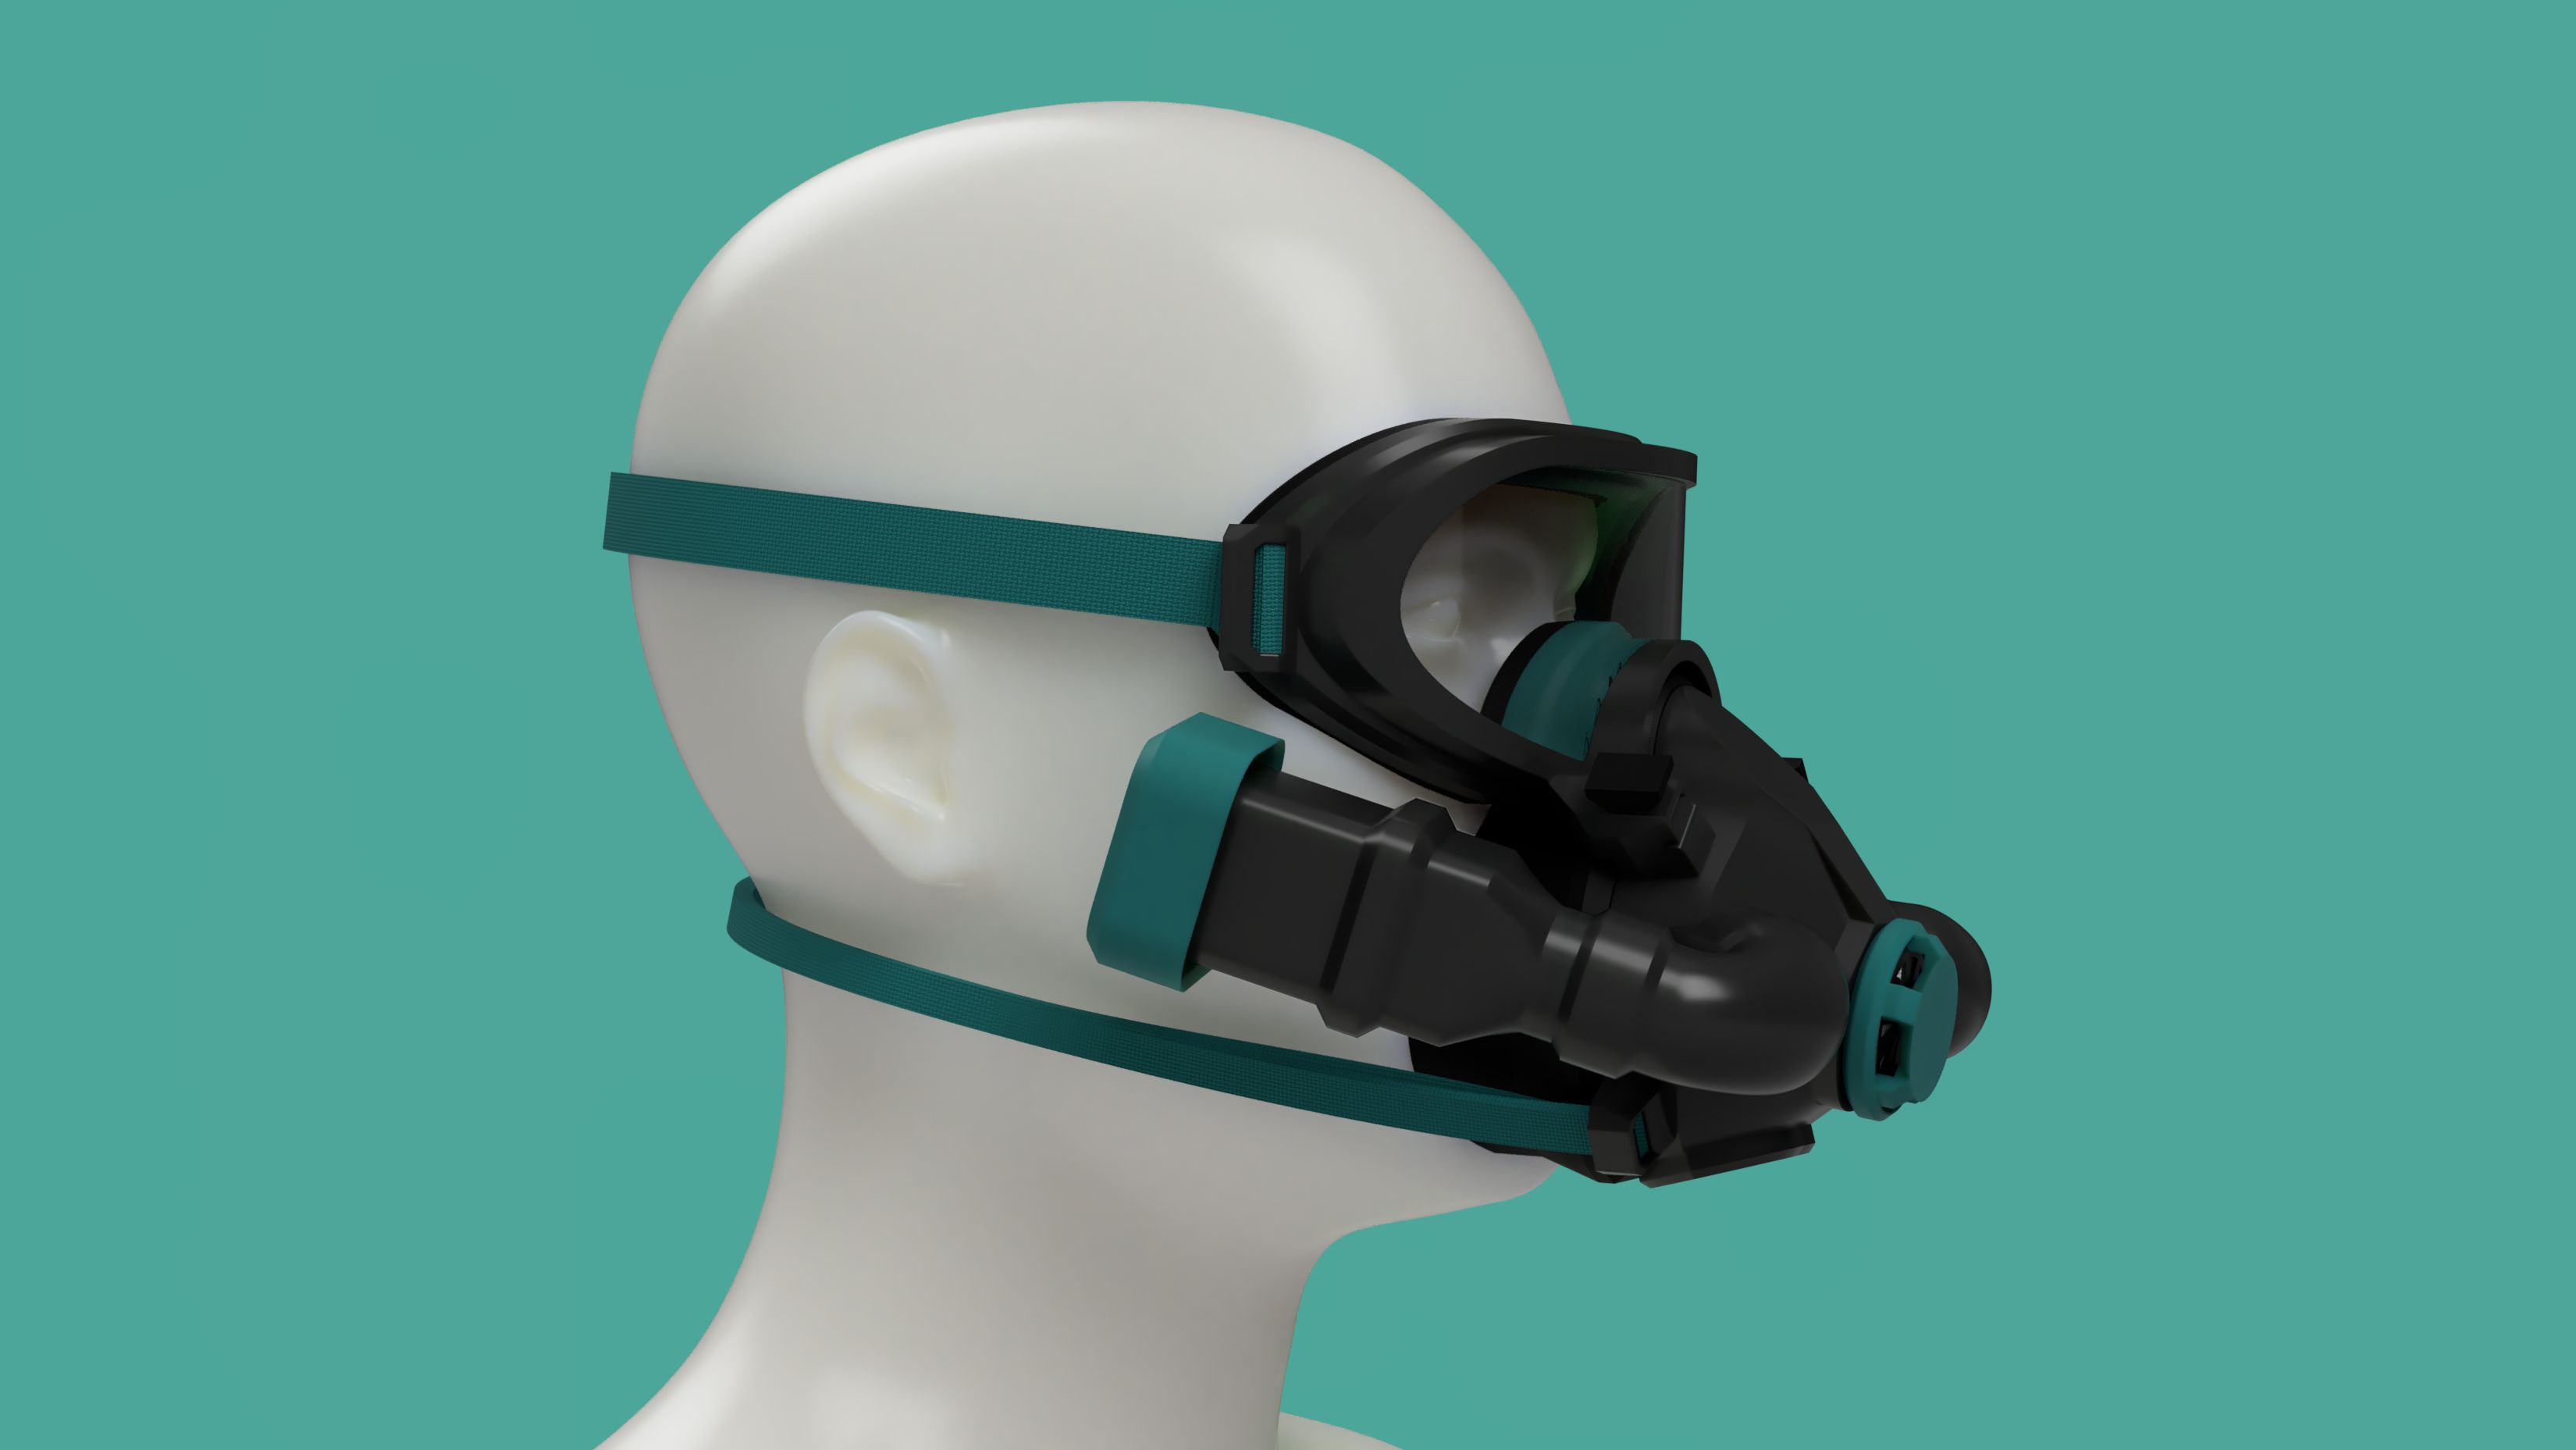 Gas-mask-v4-2020-may-15-03-06-02pm-000-customizedview9653676687-png-3500-3500